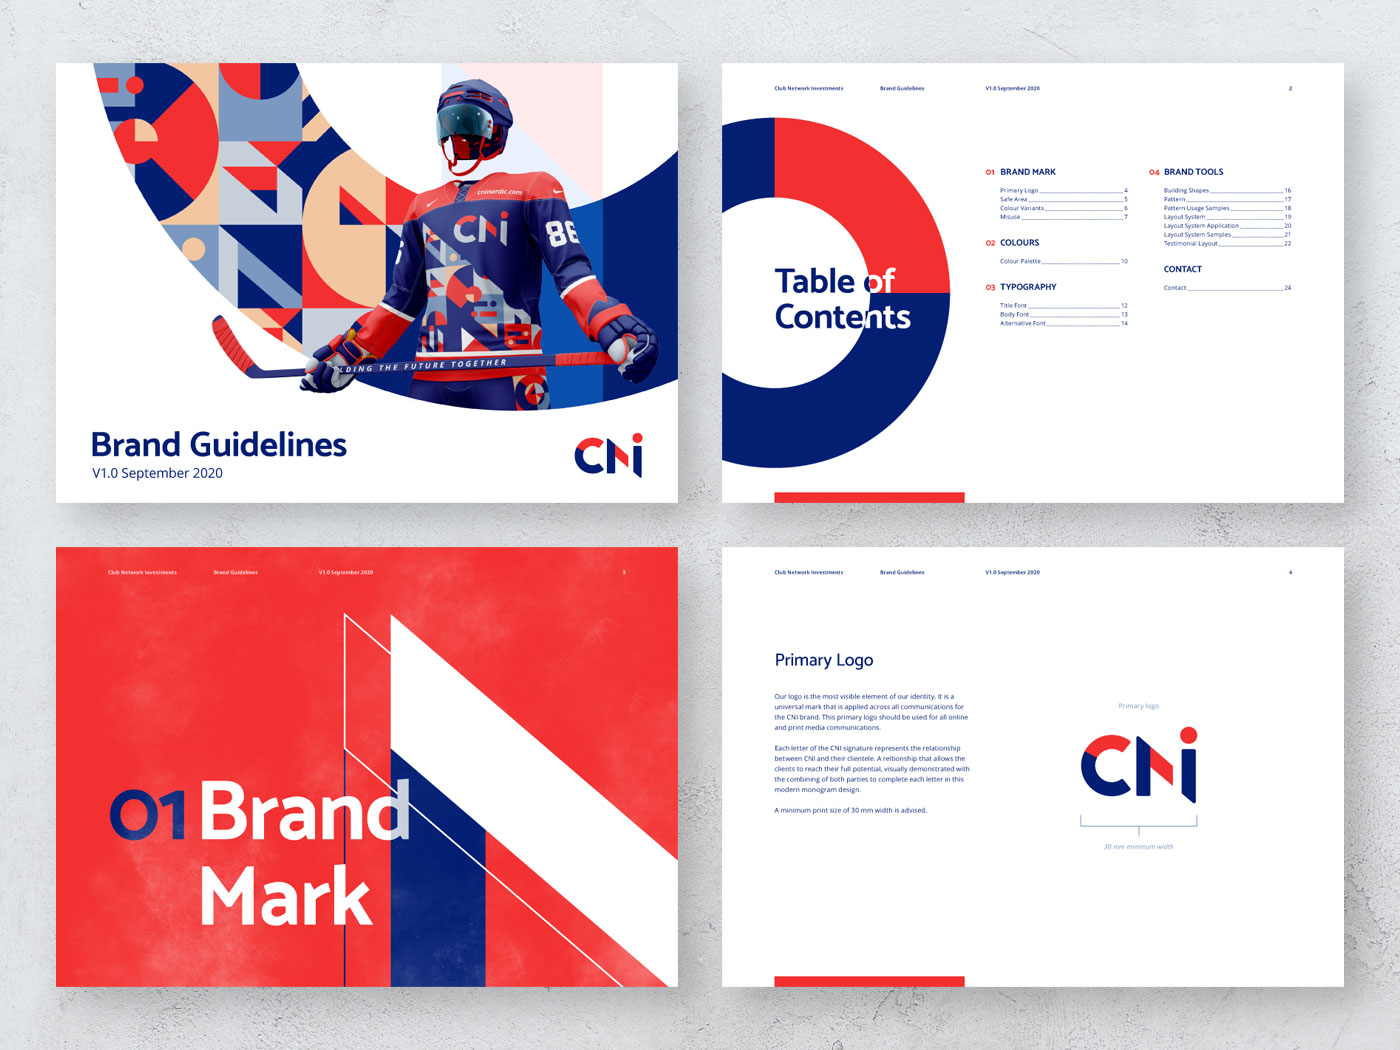 CNI brand guidelines